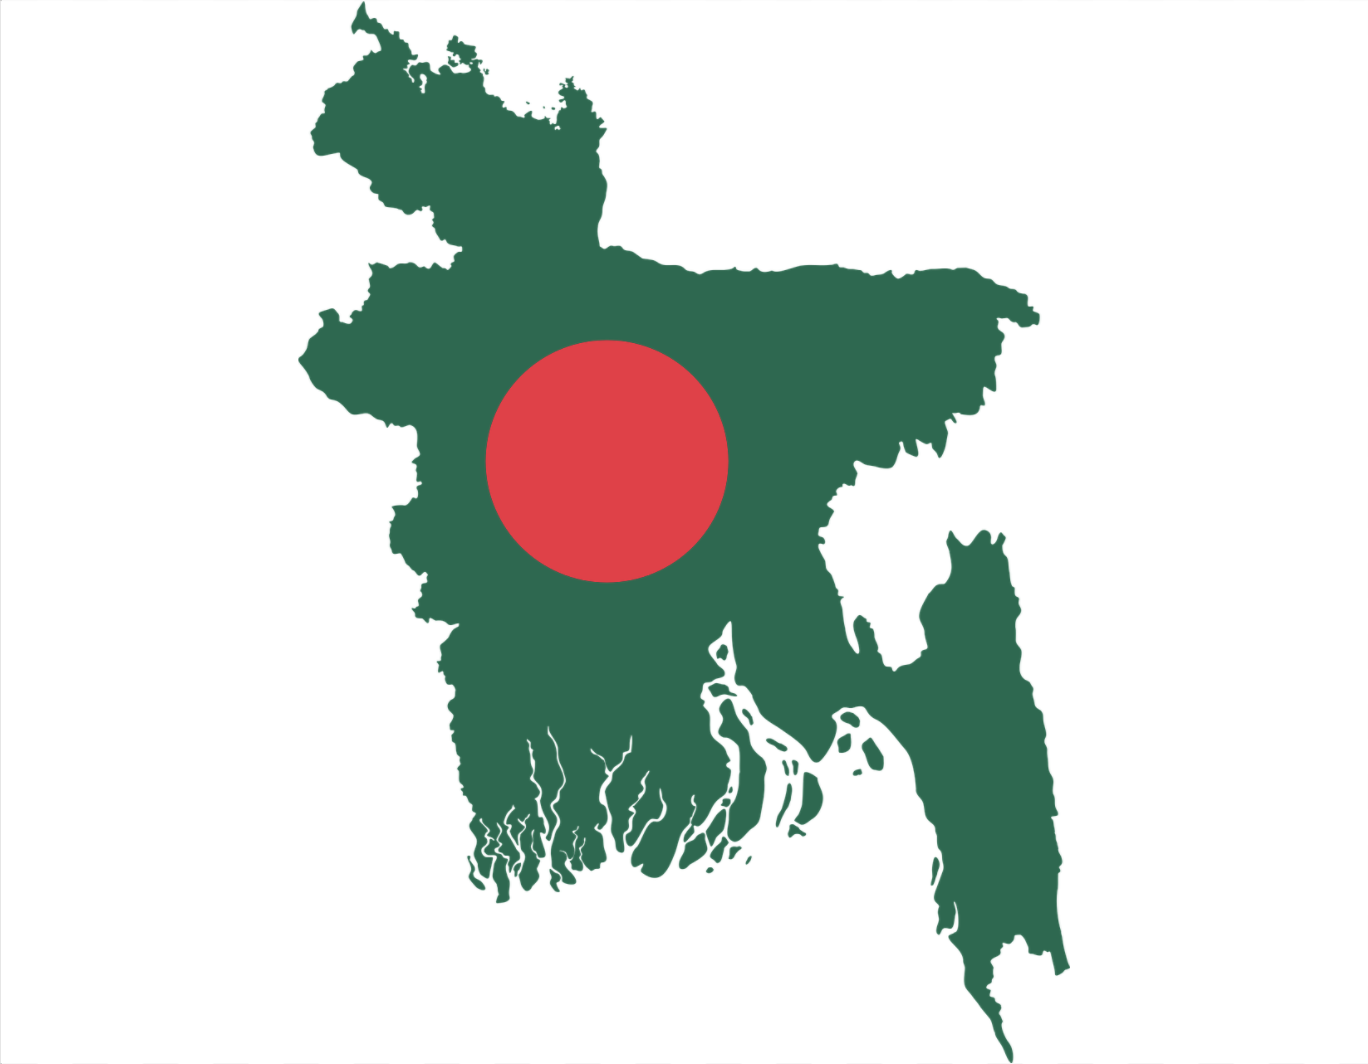 Bangladesh Petrol Corp sees first delivery of low sulphur bunker fuel from Singapore